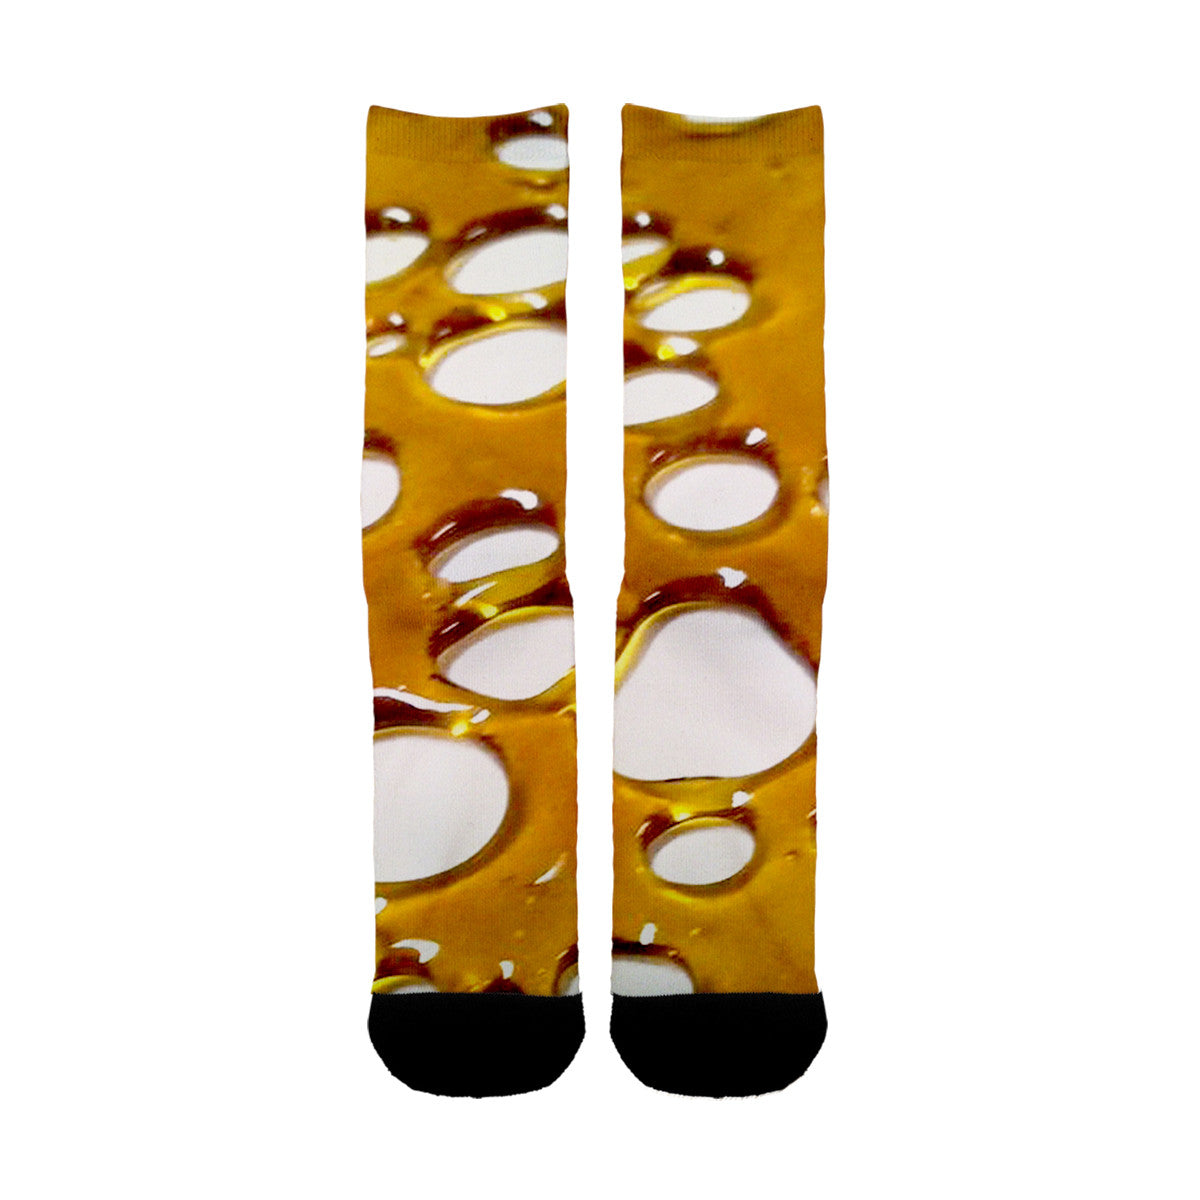 Shatter Wax Socks